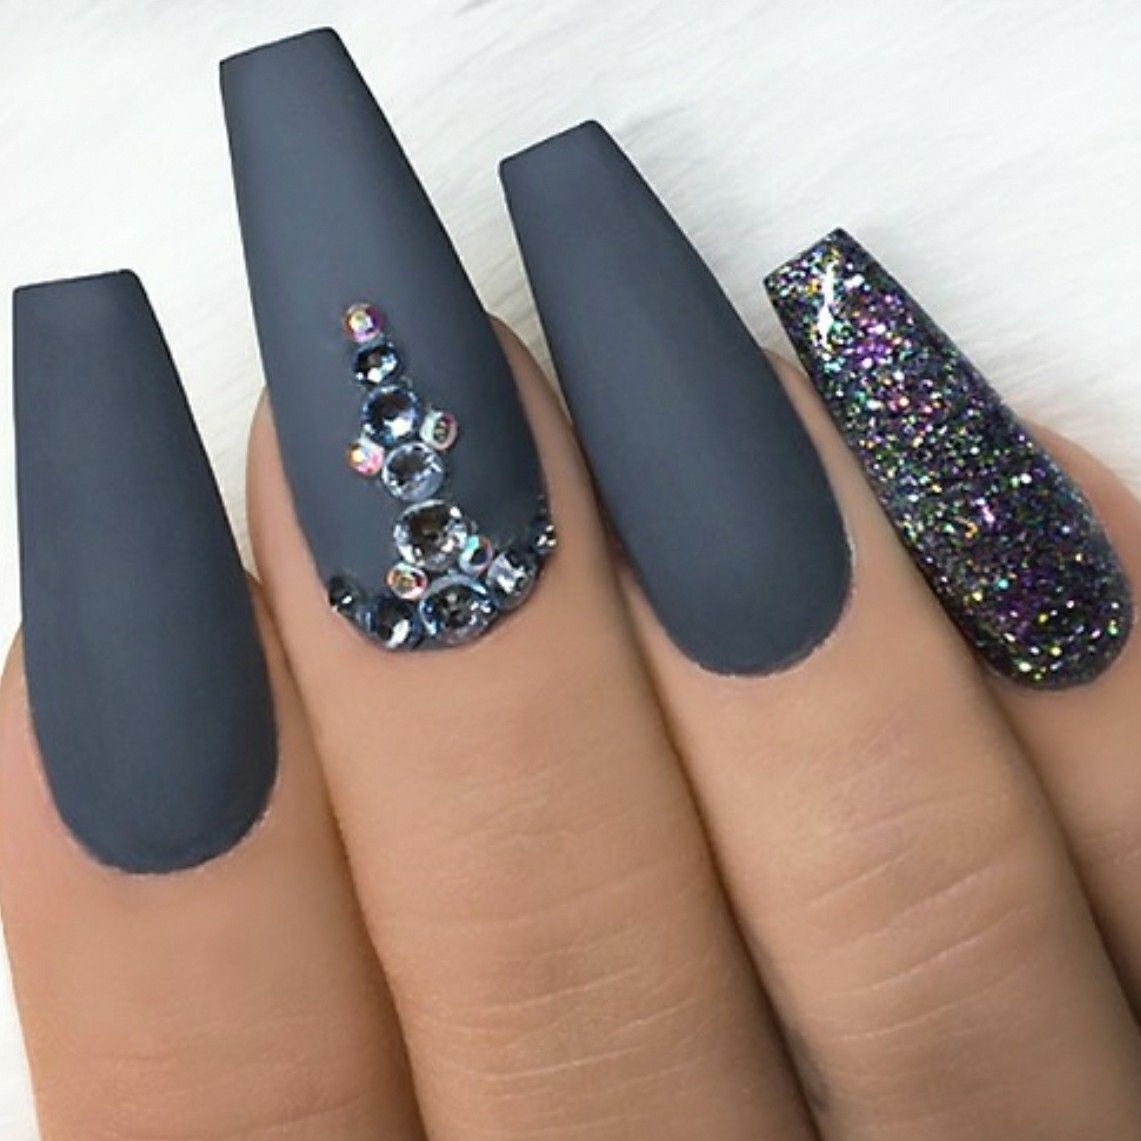 Grey Matte Nails Nails With Rhinestones Glitter Nails Ballerina Nails Acrylic Nails Rhinestone Nails Nail Designs Acrylic Nail Designs